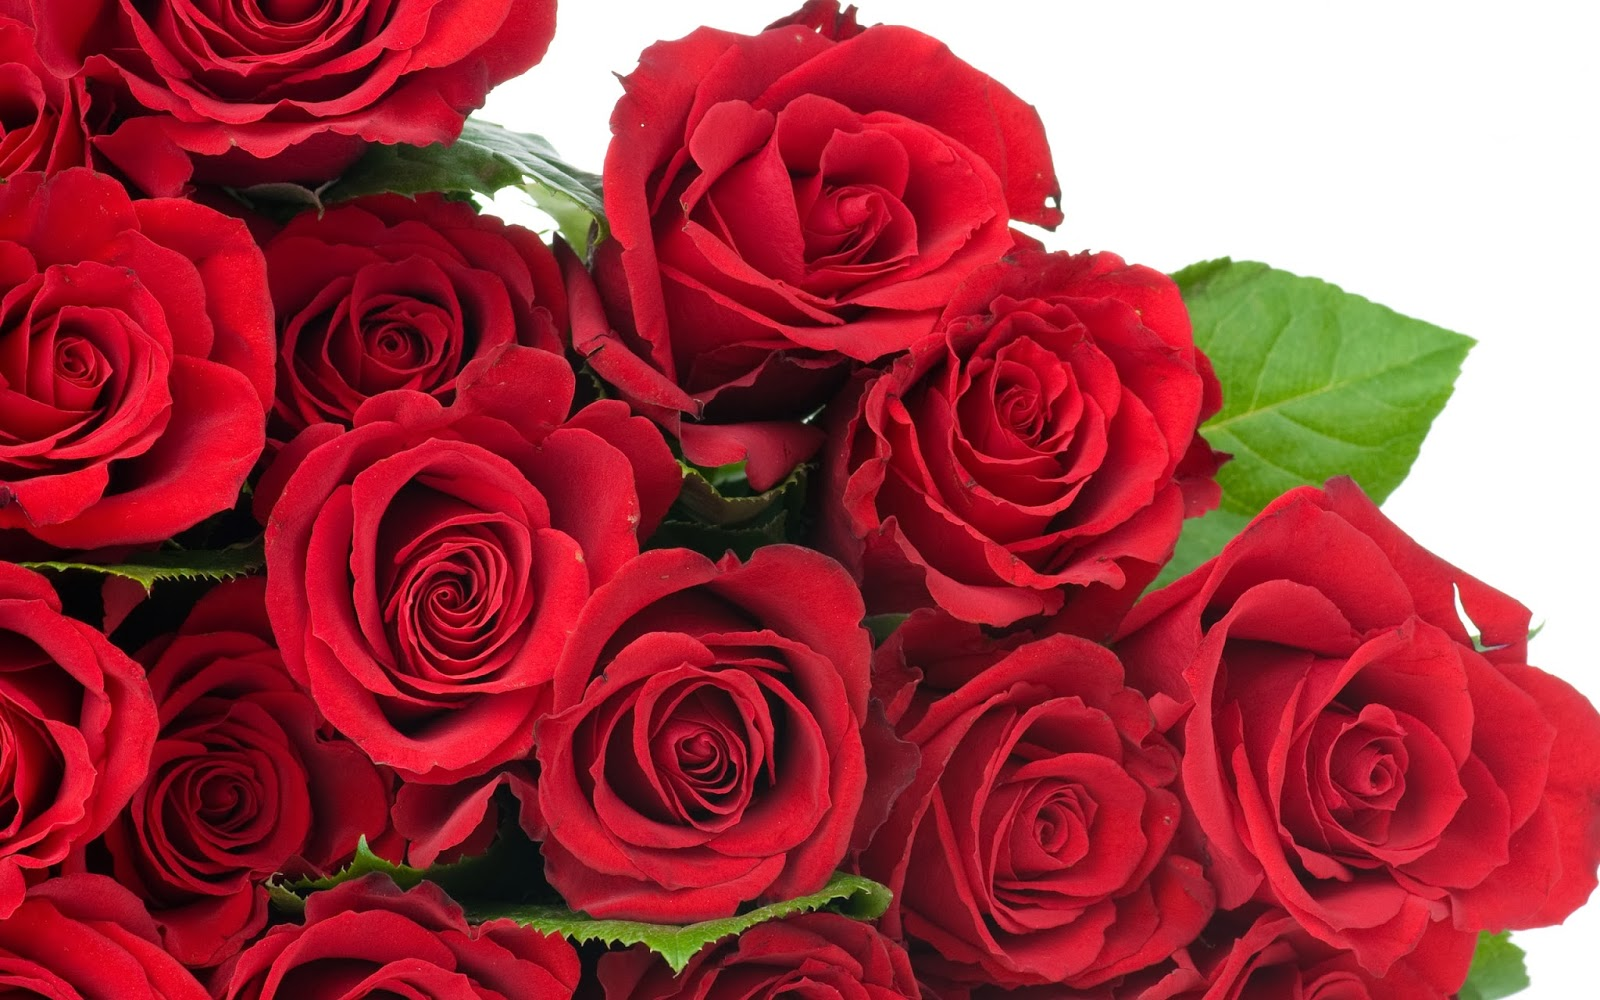 Red Rose Wallpapers Pictures Images: Red Rose HD Flowers Wallpapers